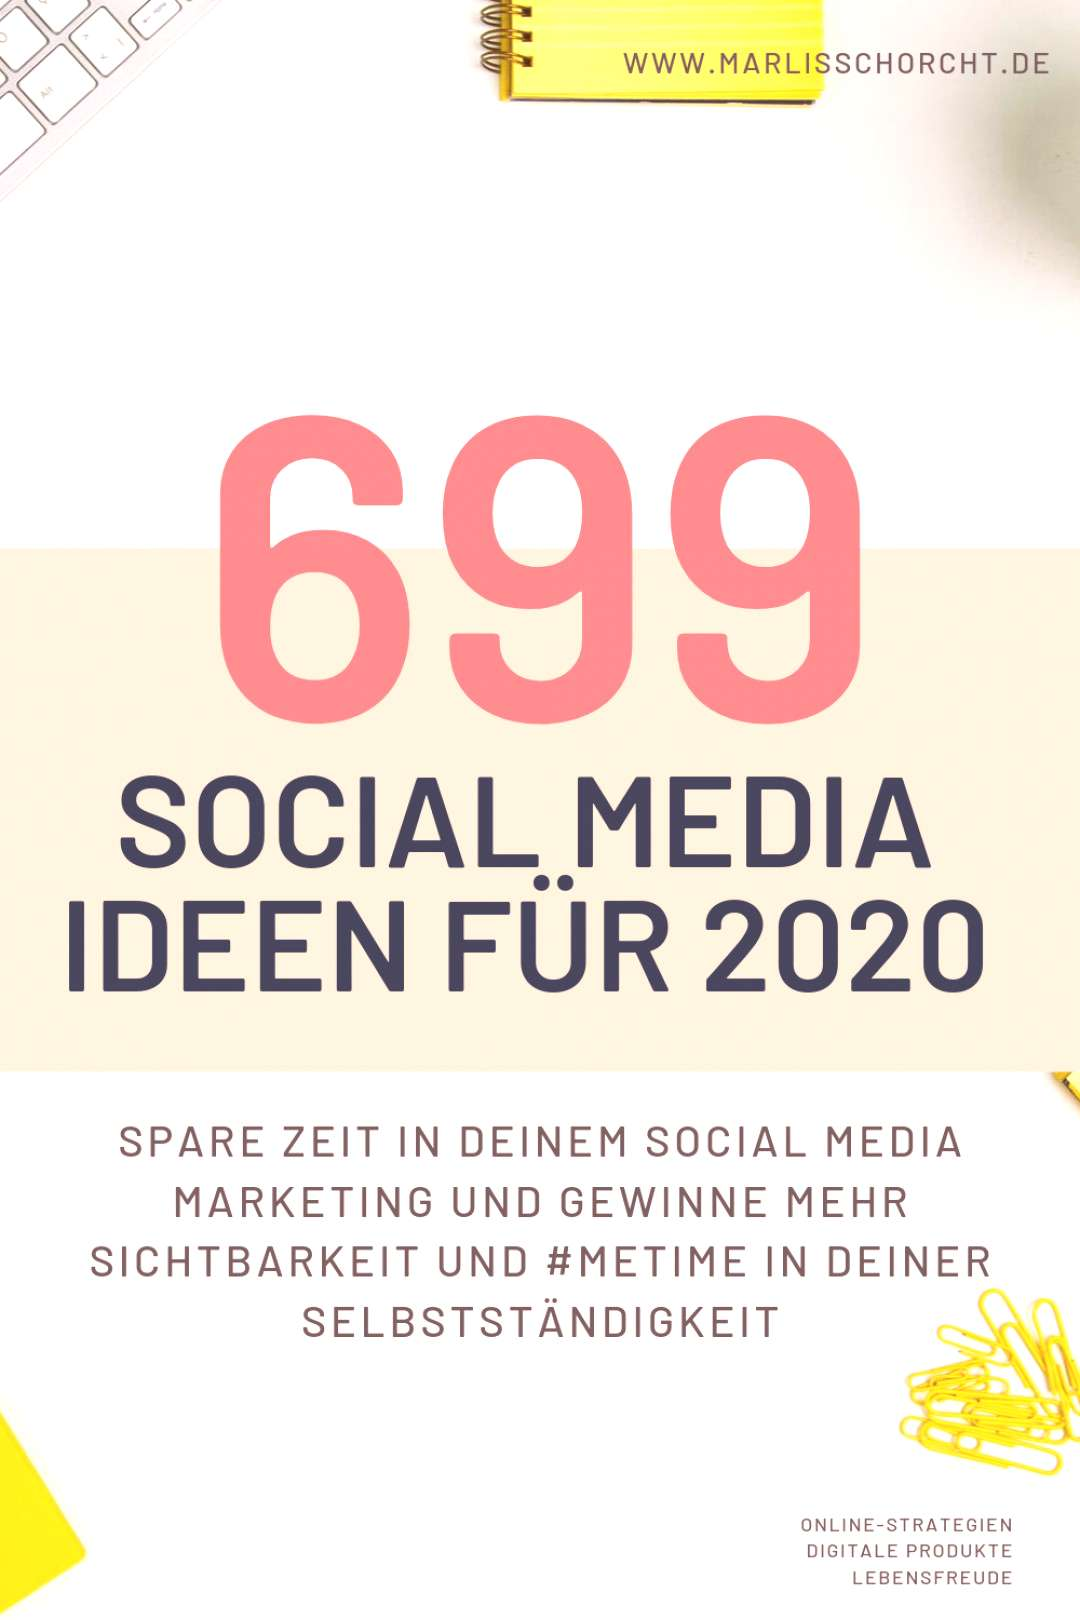 699 social media ideas for 2020 - editorial plan template, live stream ideas and more - 699 ideas